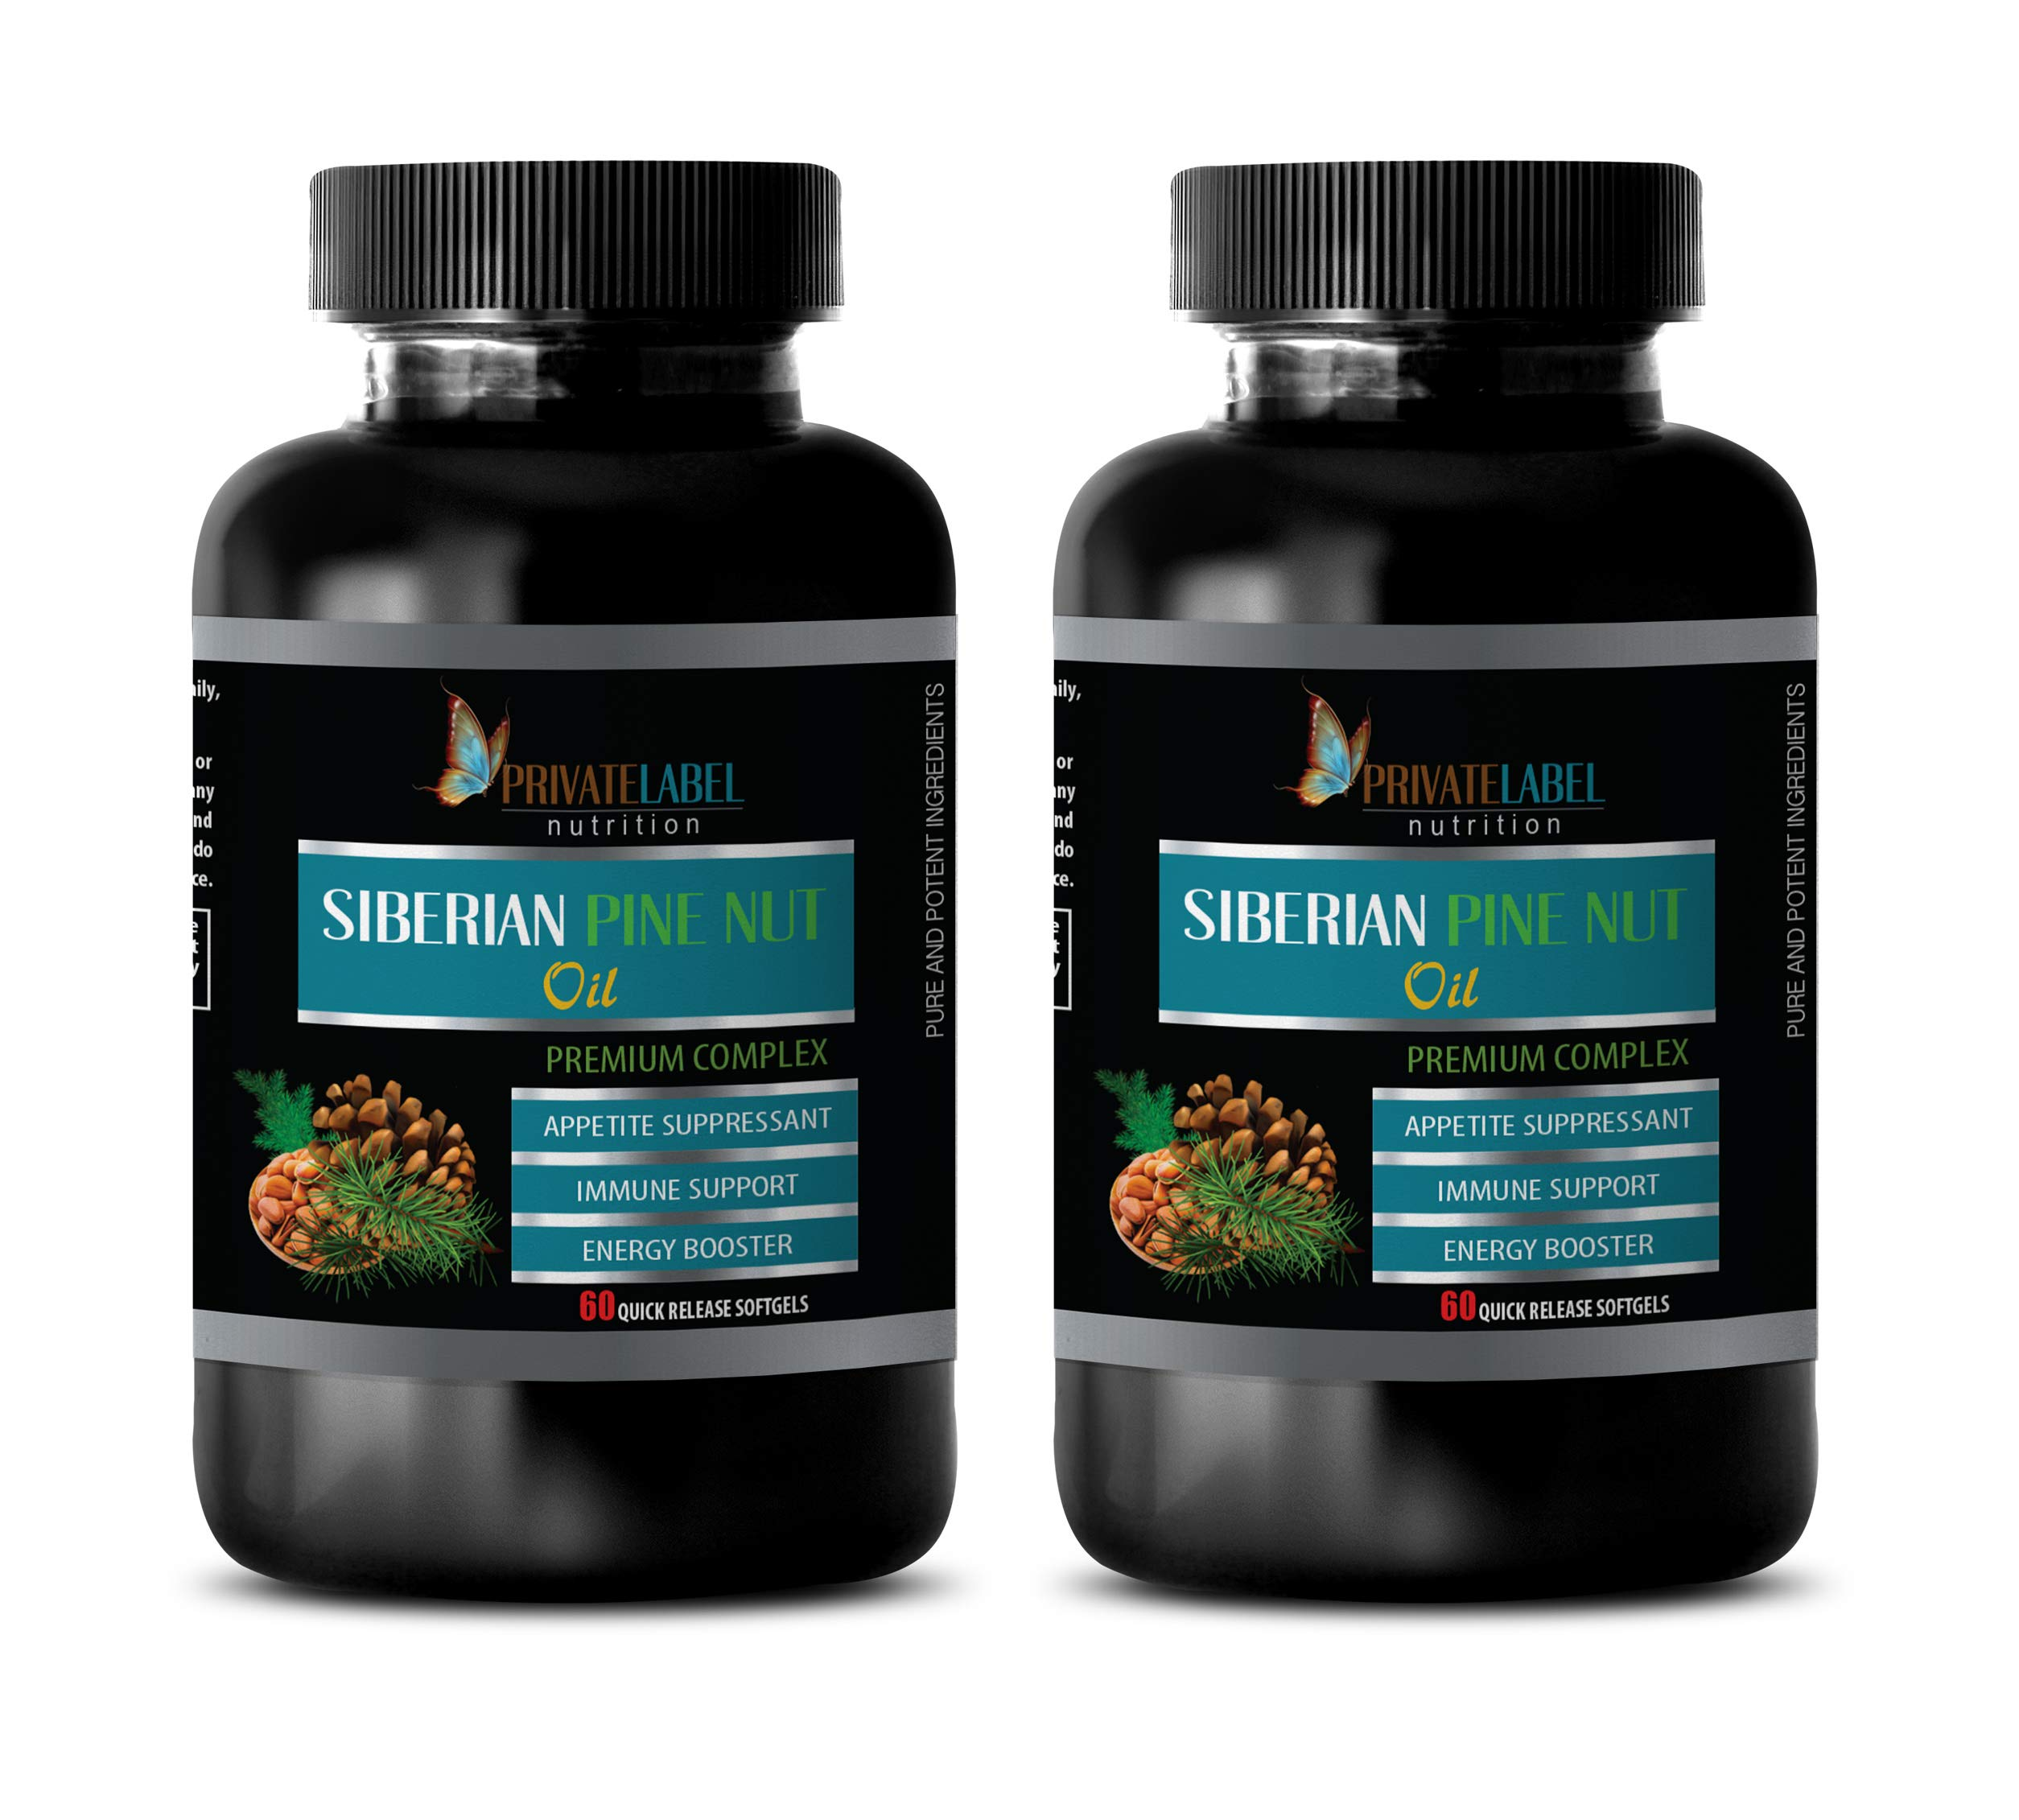 Immune System Support Dietary Supplement - Siberian Pine NUT Oil - Premium Complex - Digestion Support Supplement - 2 Bottles 120 Softgels by PRIVATE LABEL LLC